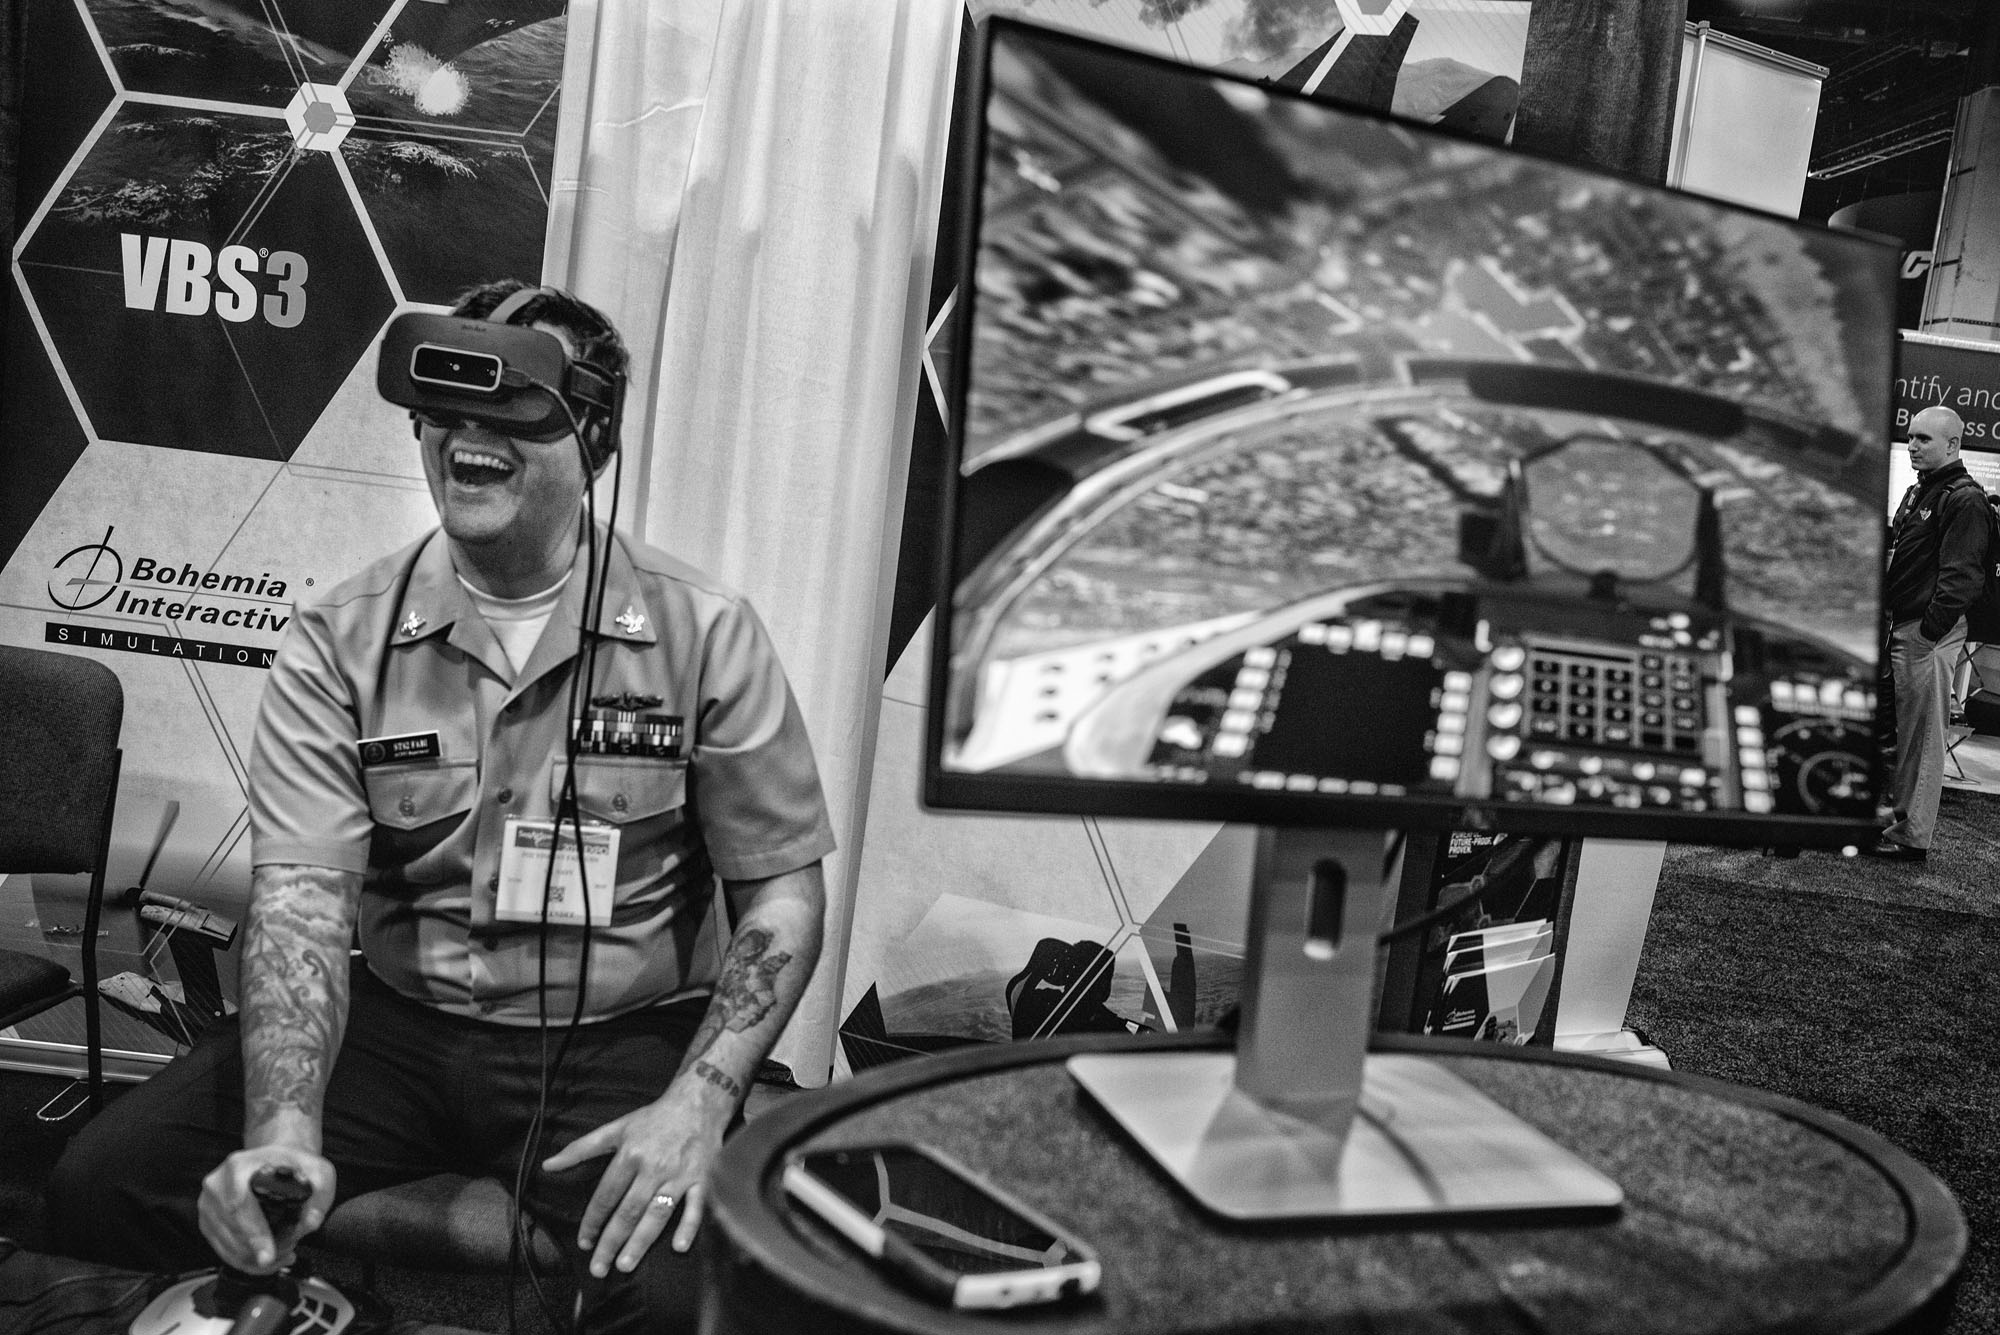 An attendee tries a virtual reality headset at The Navy League's Sea-Air-Space Exposition in National Harbor, Maryland on April 3, 2017. The Trump Administration's proposed budget would increase military spending by 10%, or $54 billion in the coming fiscal year.